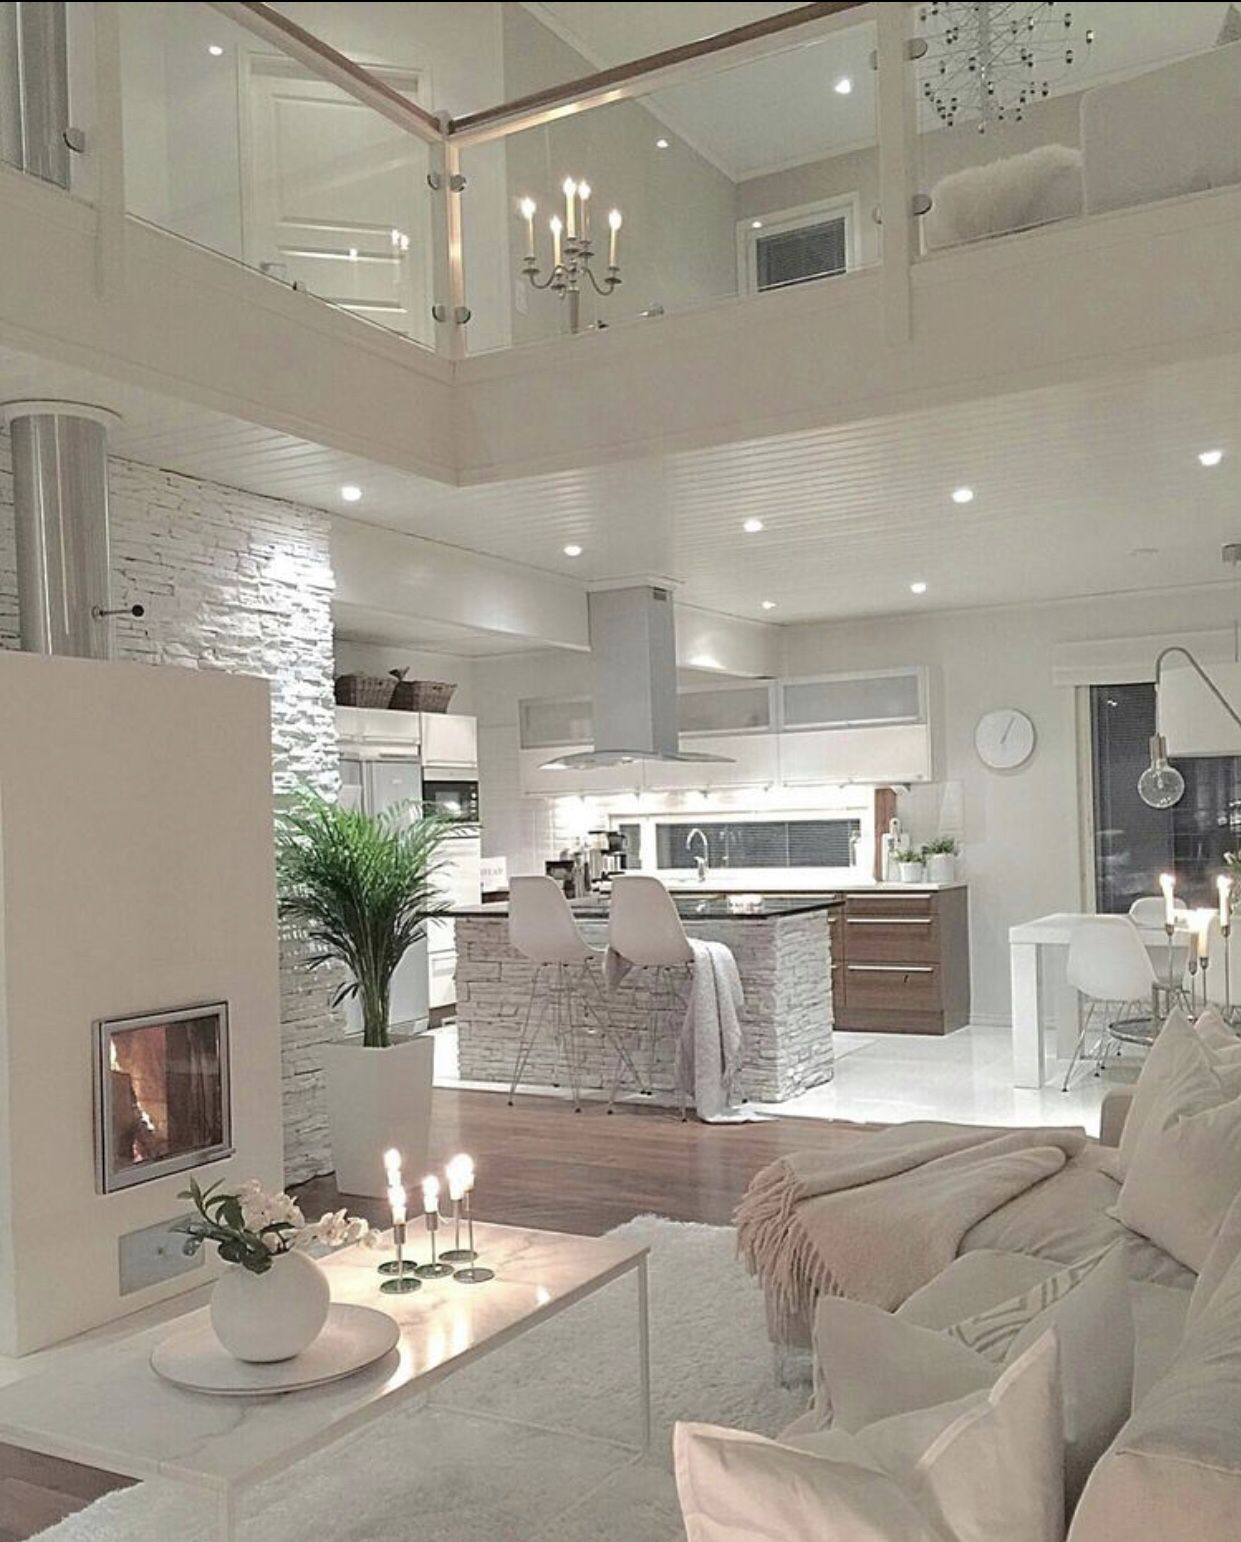 Wine design your style mansions beautiful homes case villas interior also pin by on   pinterest home decor rh